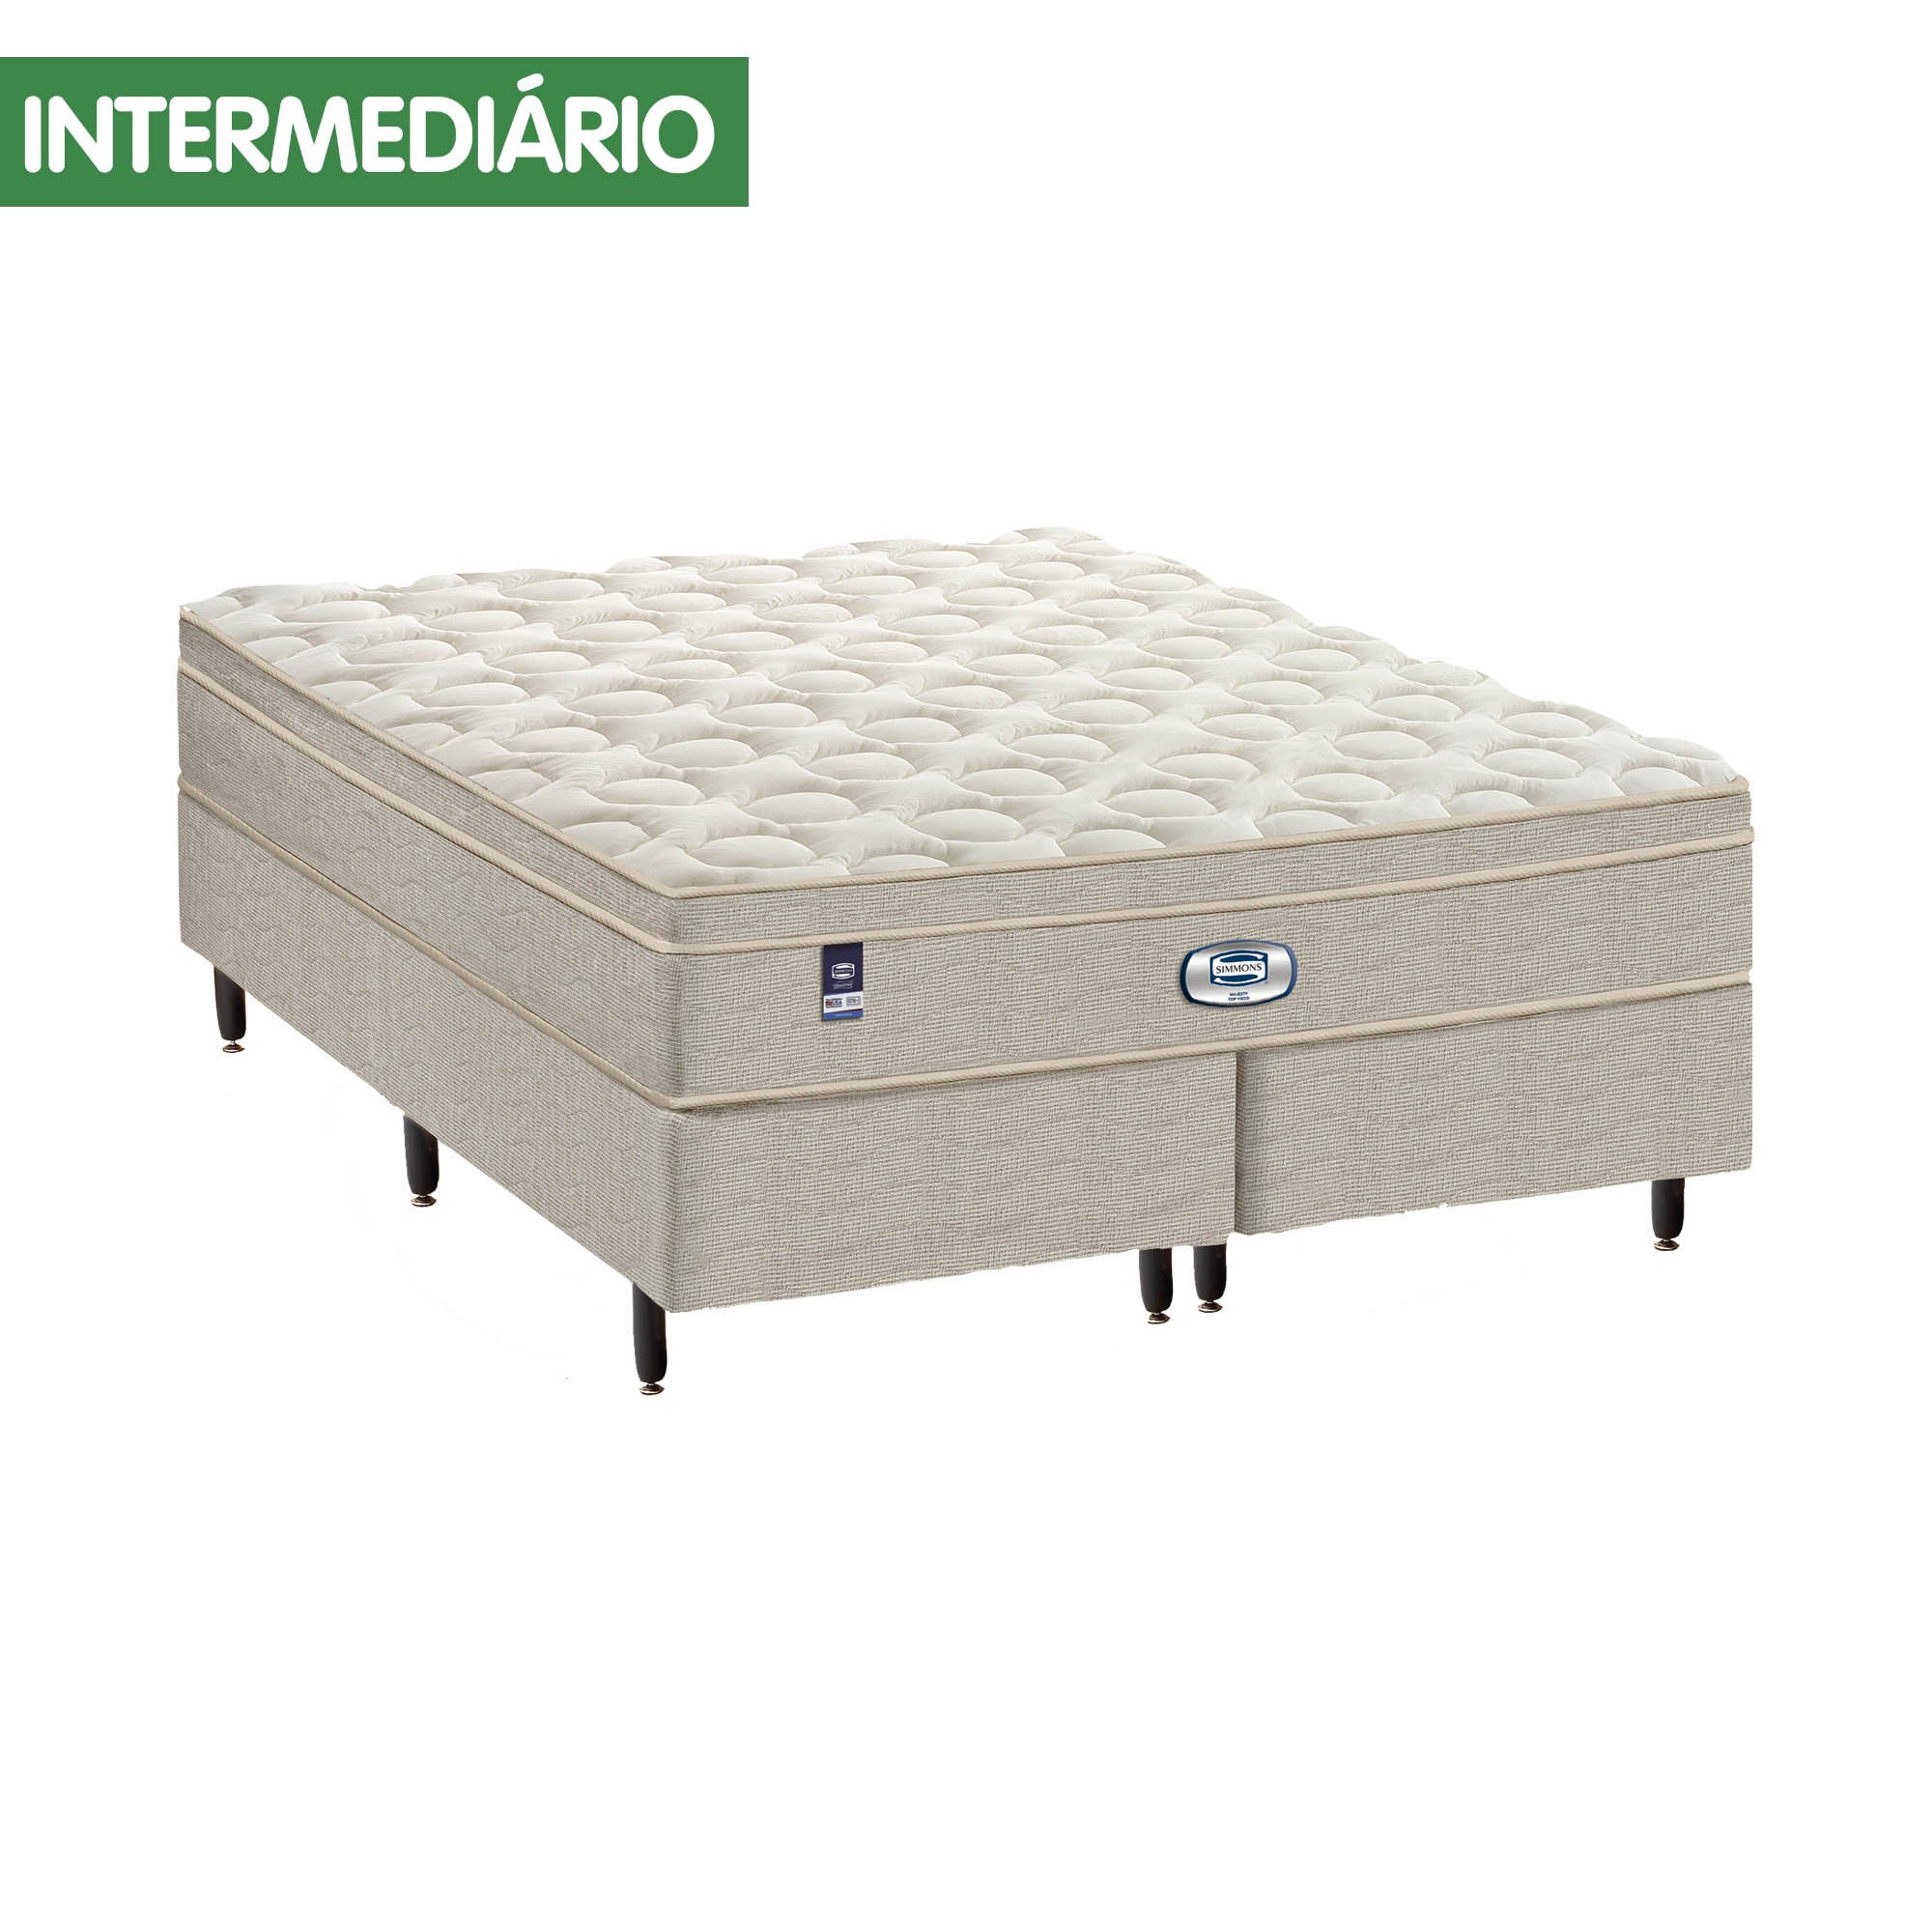 Conjunto Box Simmons Majesty Premium Top Visco [Queen 158 x 198 cm]